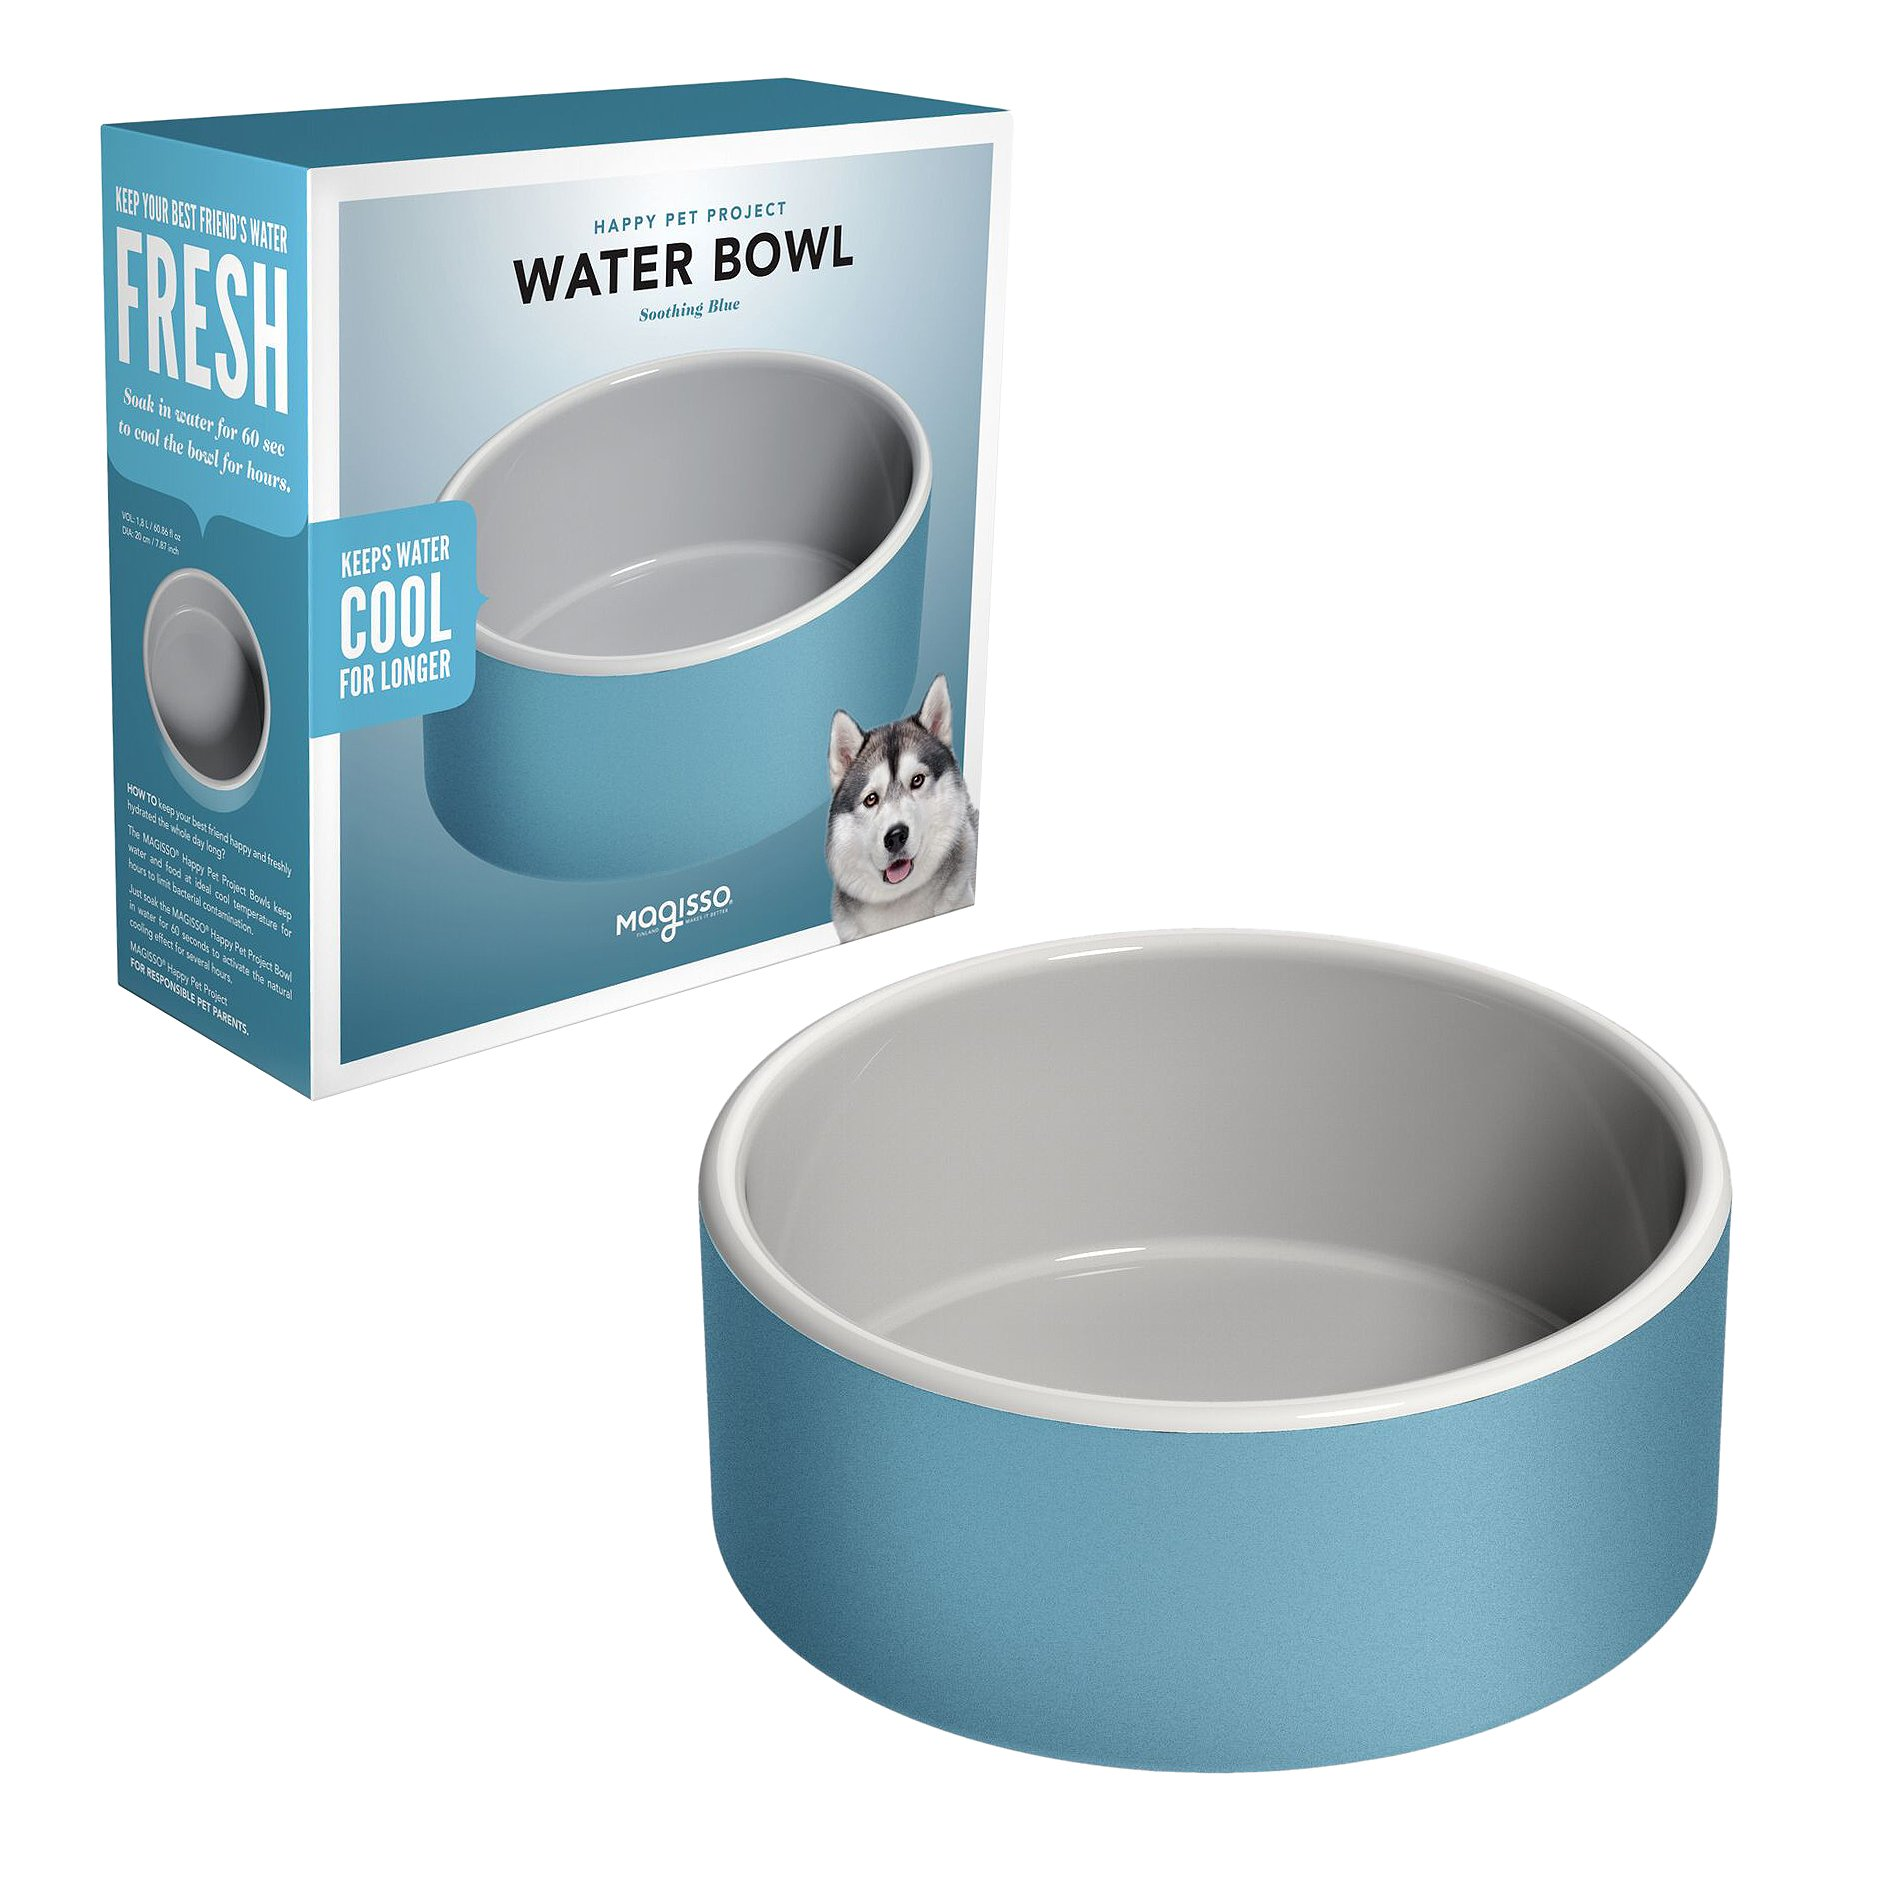 Magisso Happy Pet Project Naturally Cooling Ceramics Water Bowl (Blue, 8 Inch) by Magisso